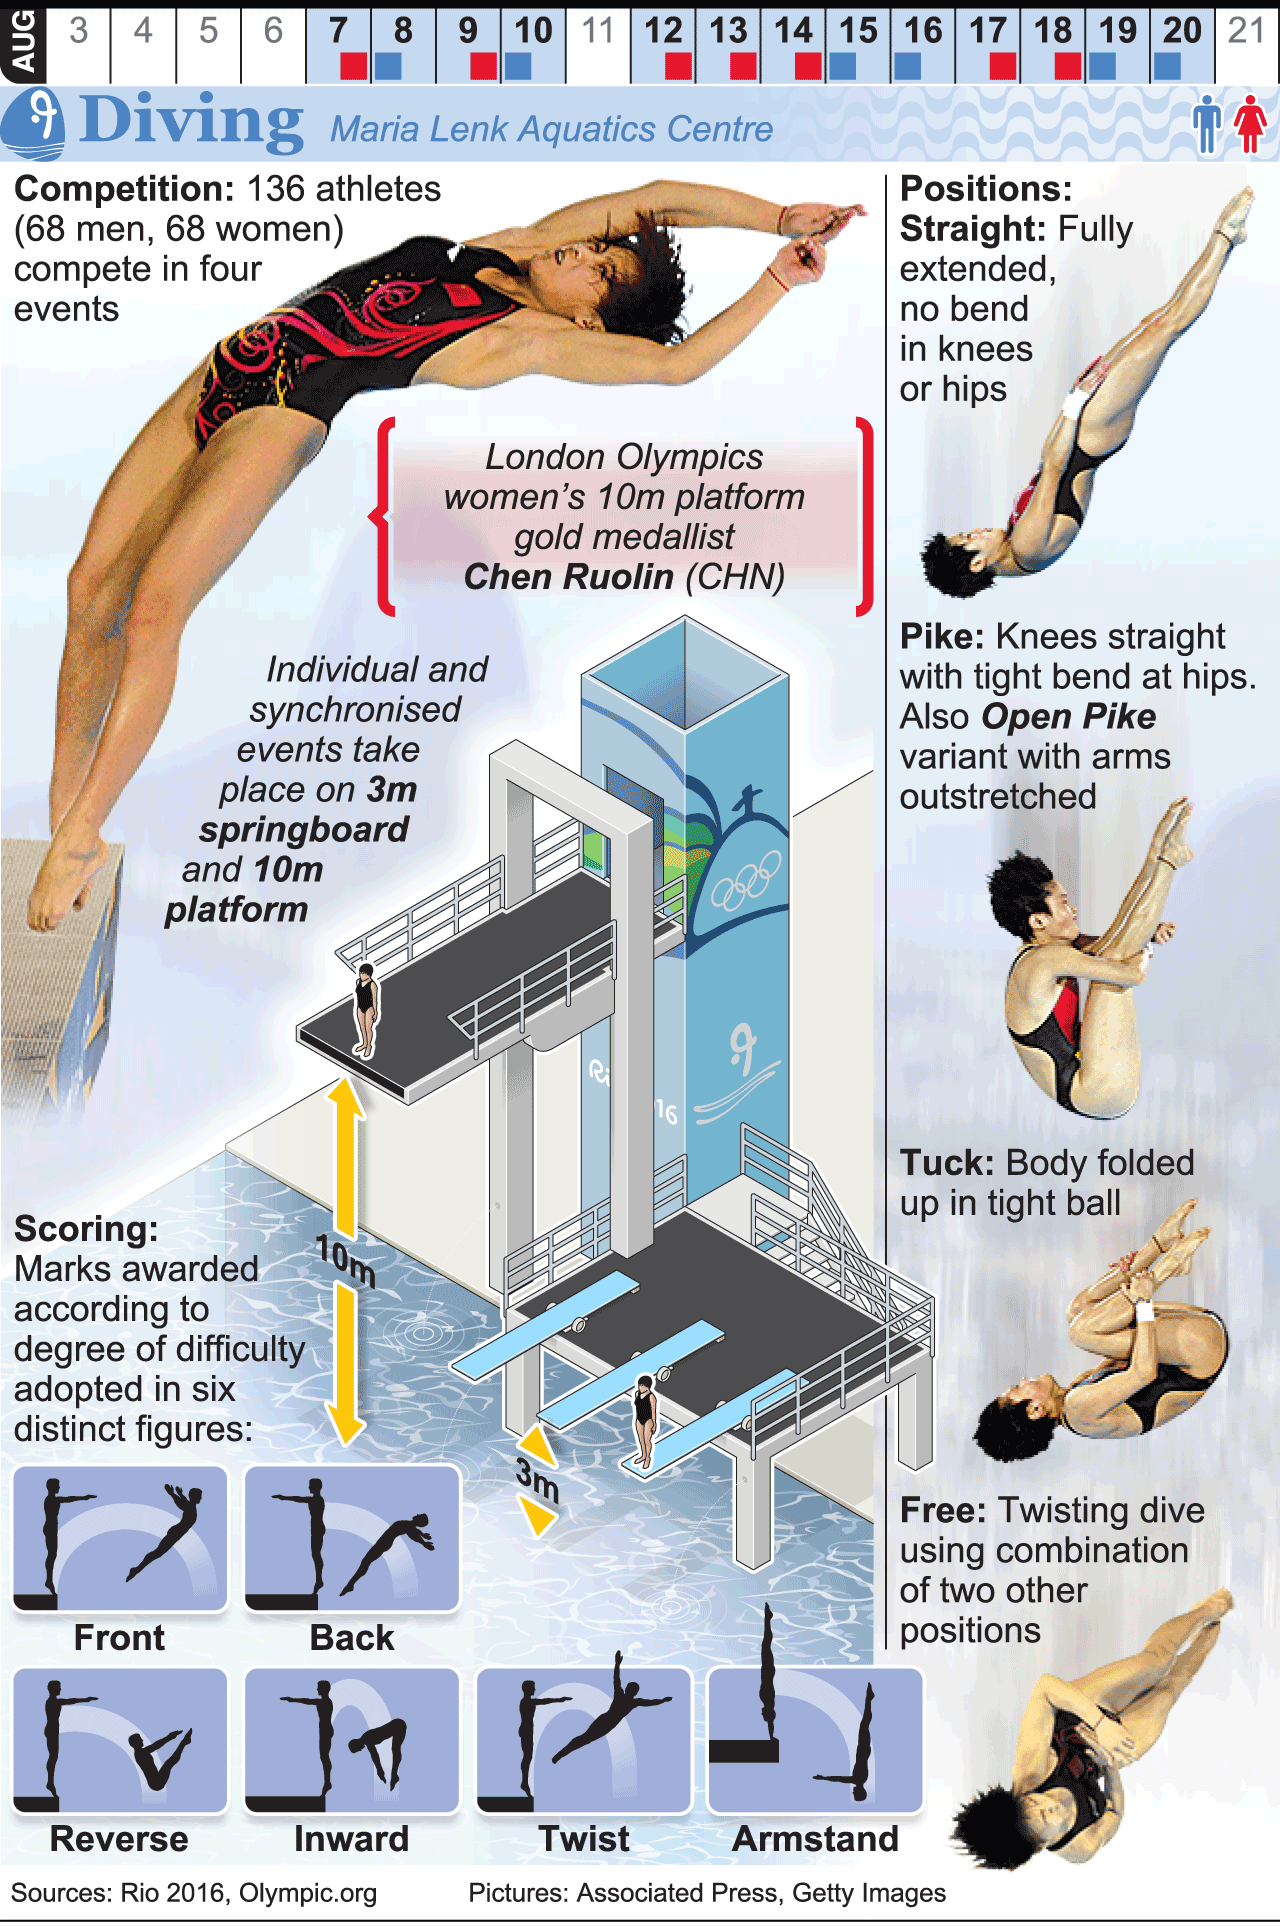 Rio 2016 Olympic Diving Infographic Olympic Diving Diving Springboard Olympics